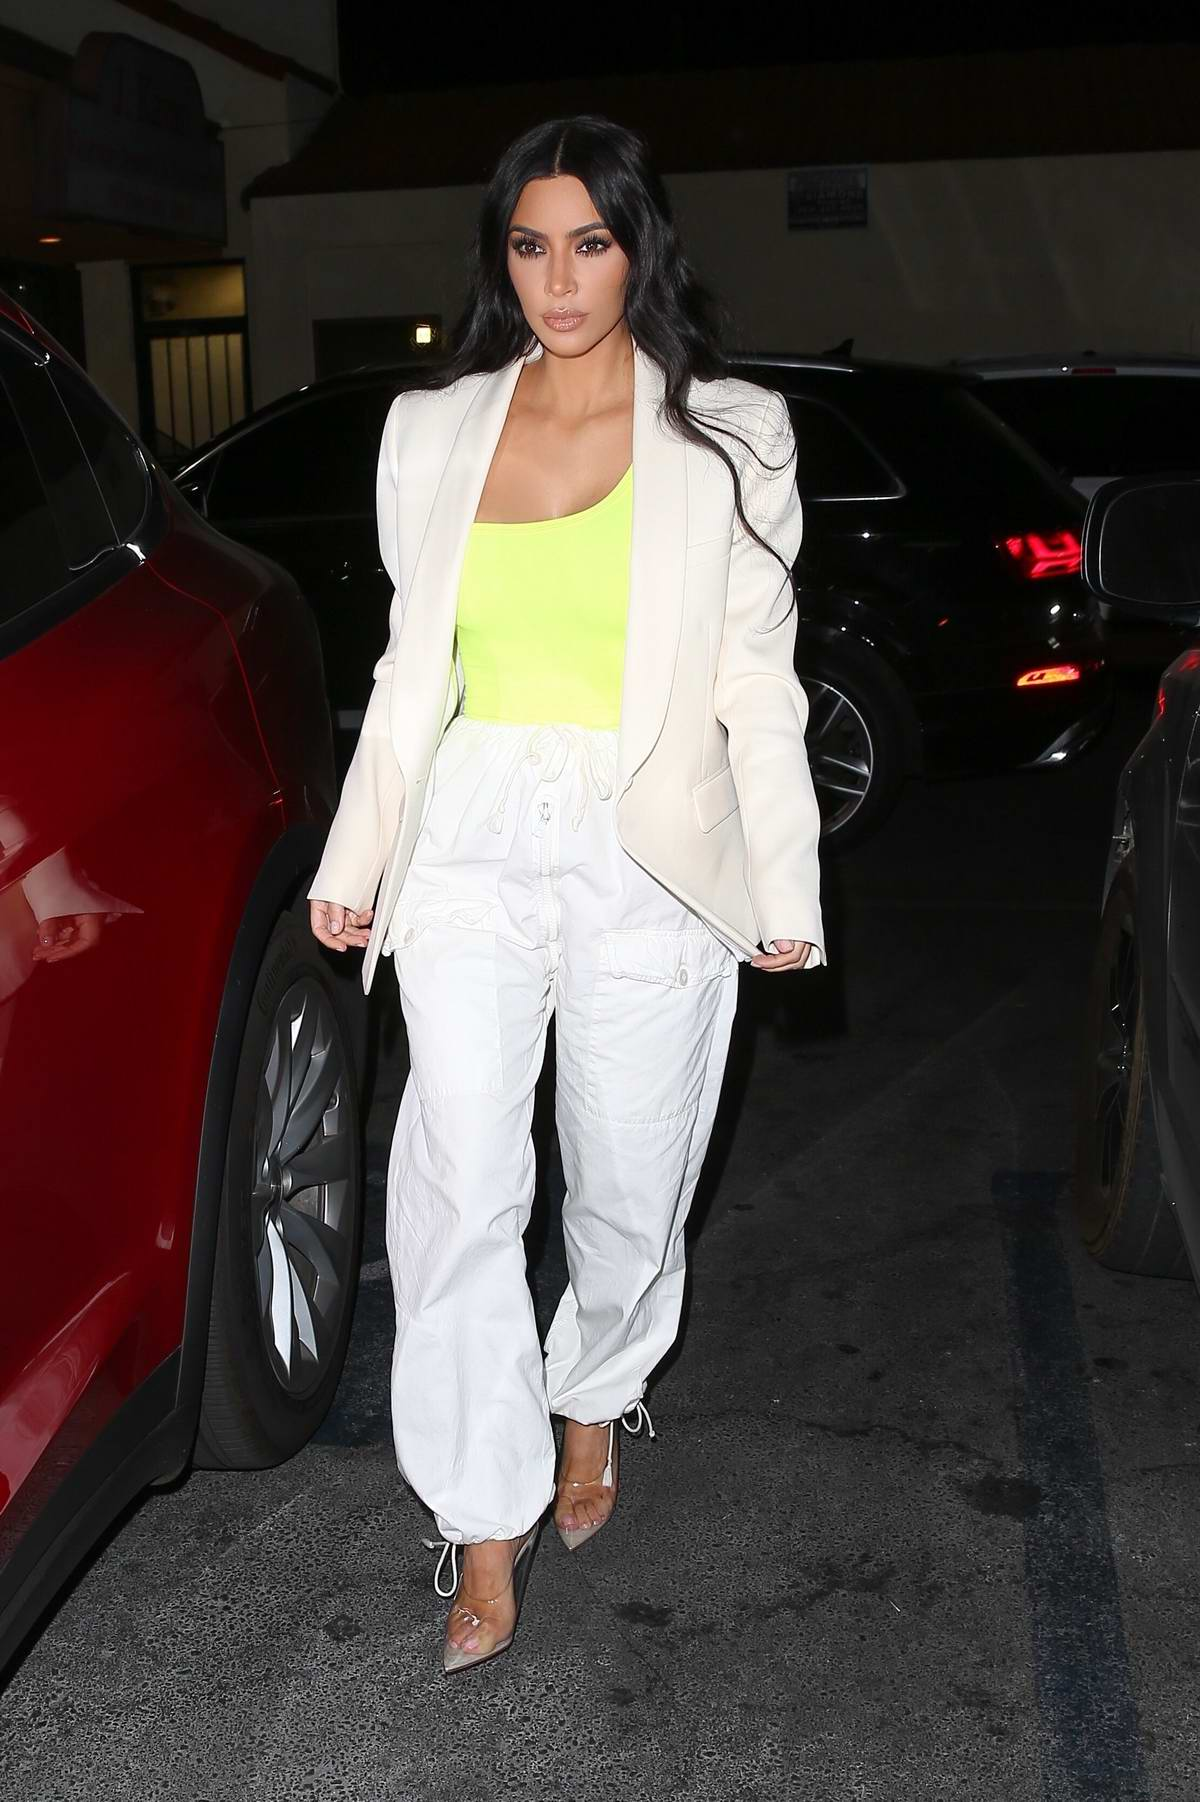 Kim Kardashian spotted wearing a yellow top with cream blazer and white pants during a night out in Hollywood, Los Angeles